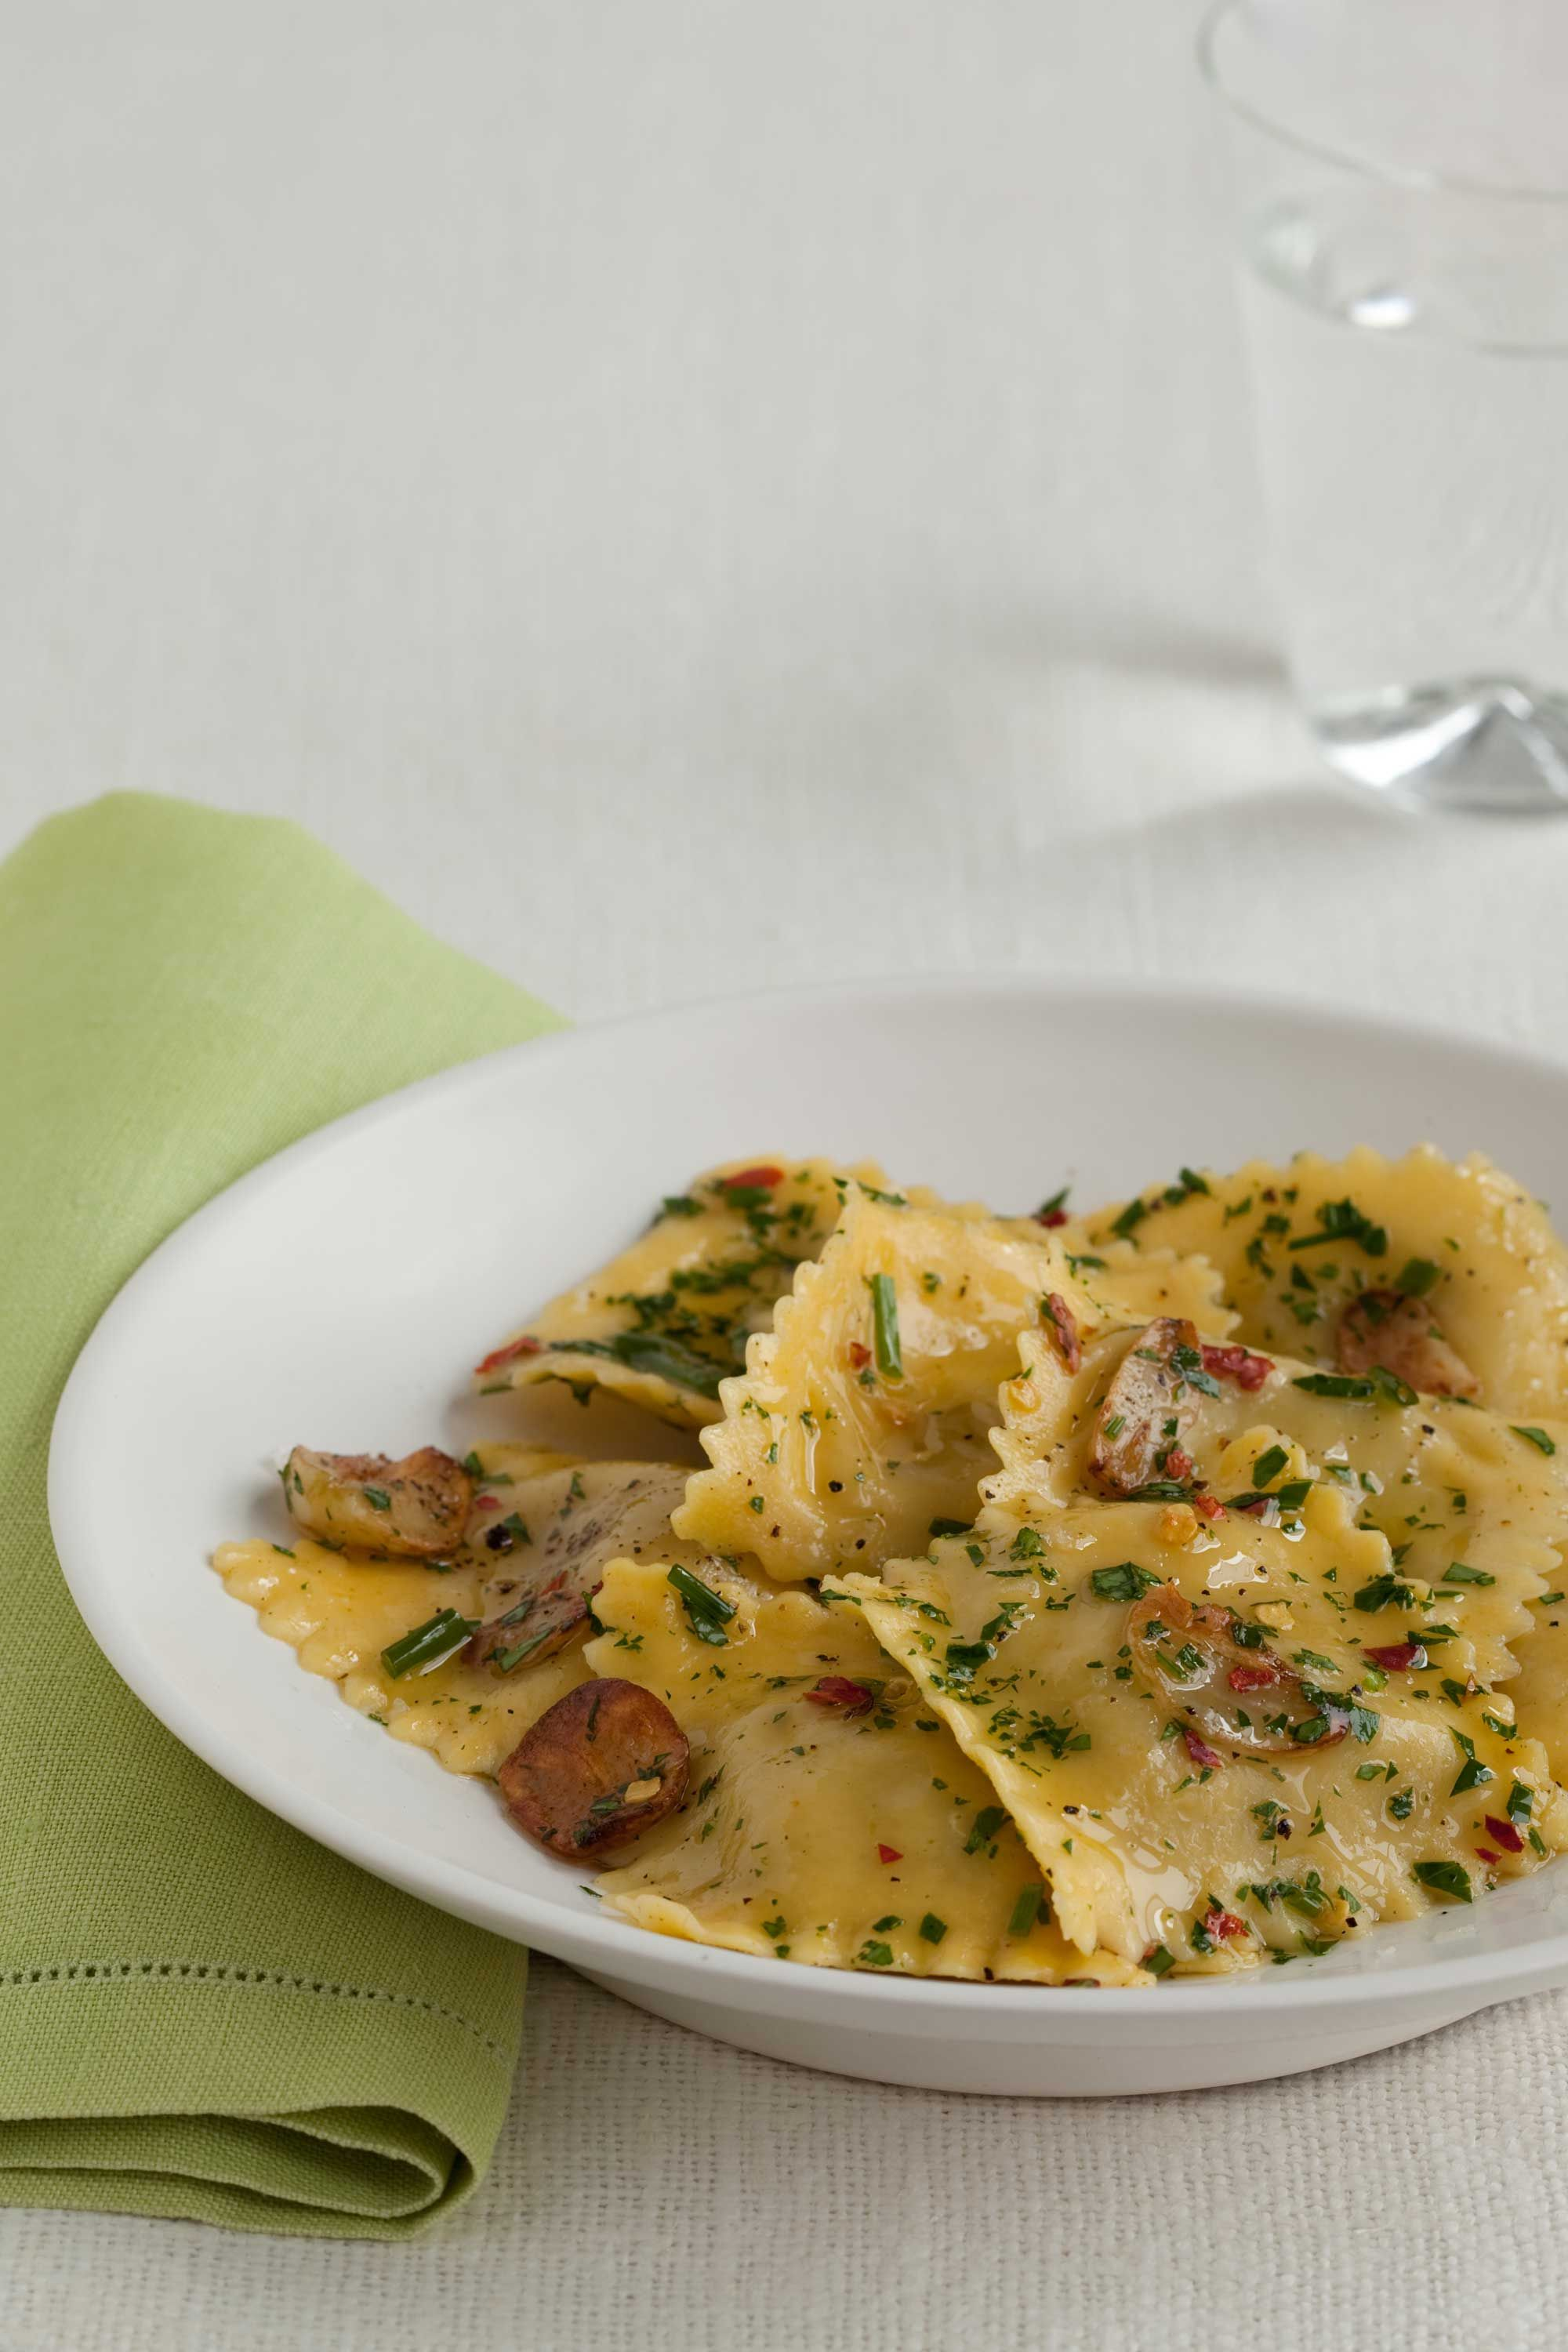 47 Easy Pasta Recipes - Best Ideas for Good Pasta Dishes